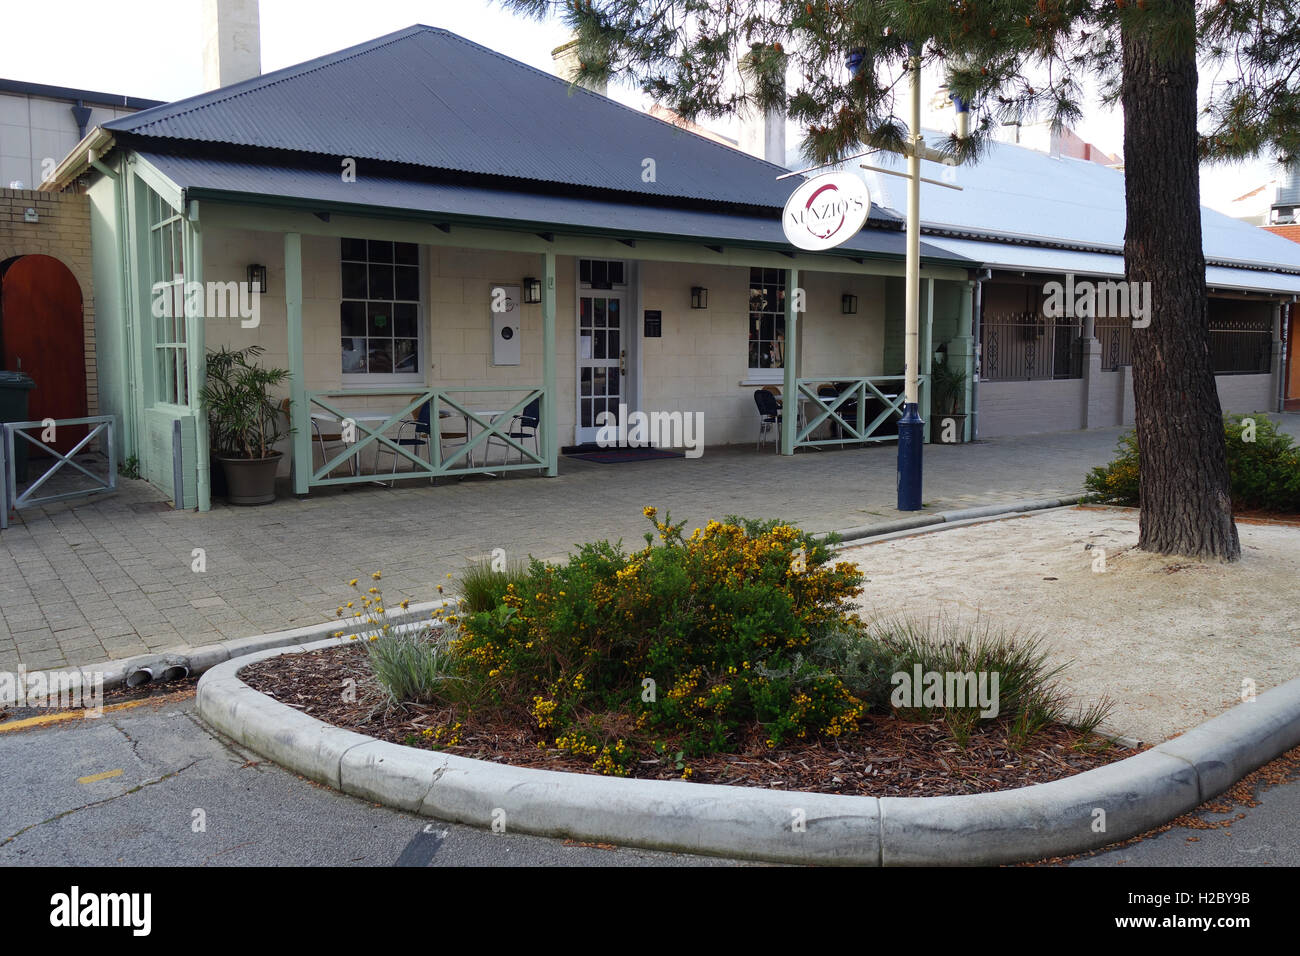 Nunzio's Restaurant in Essex Street, Fremantle, Perth, Western Australia. No PR - Stock Image